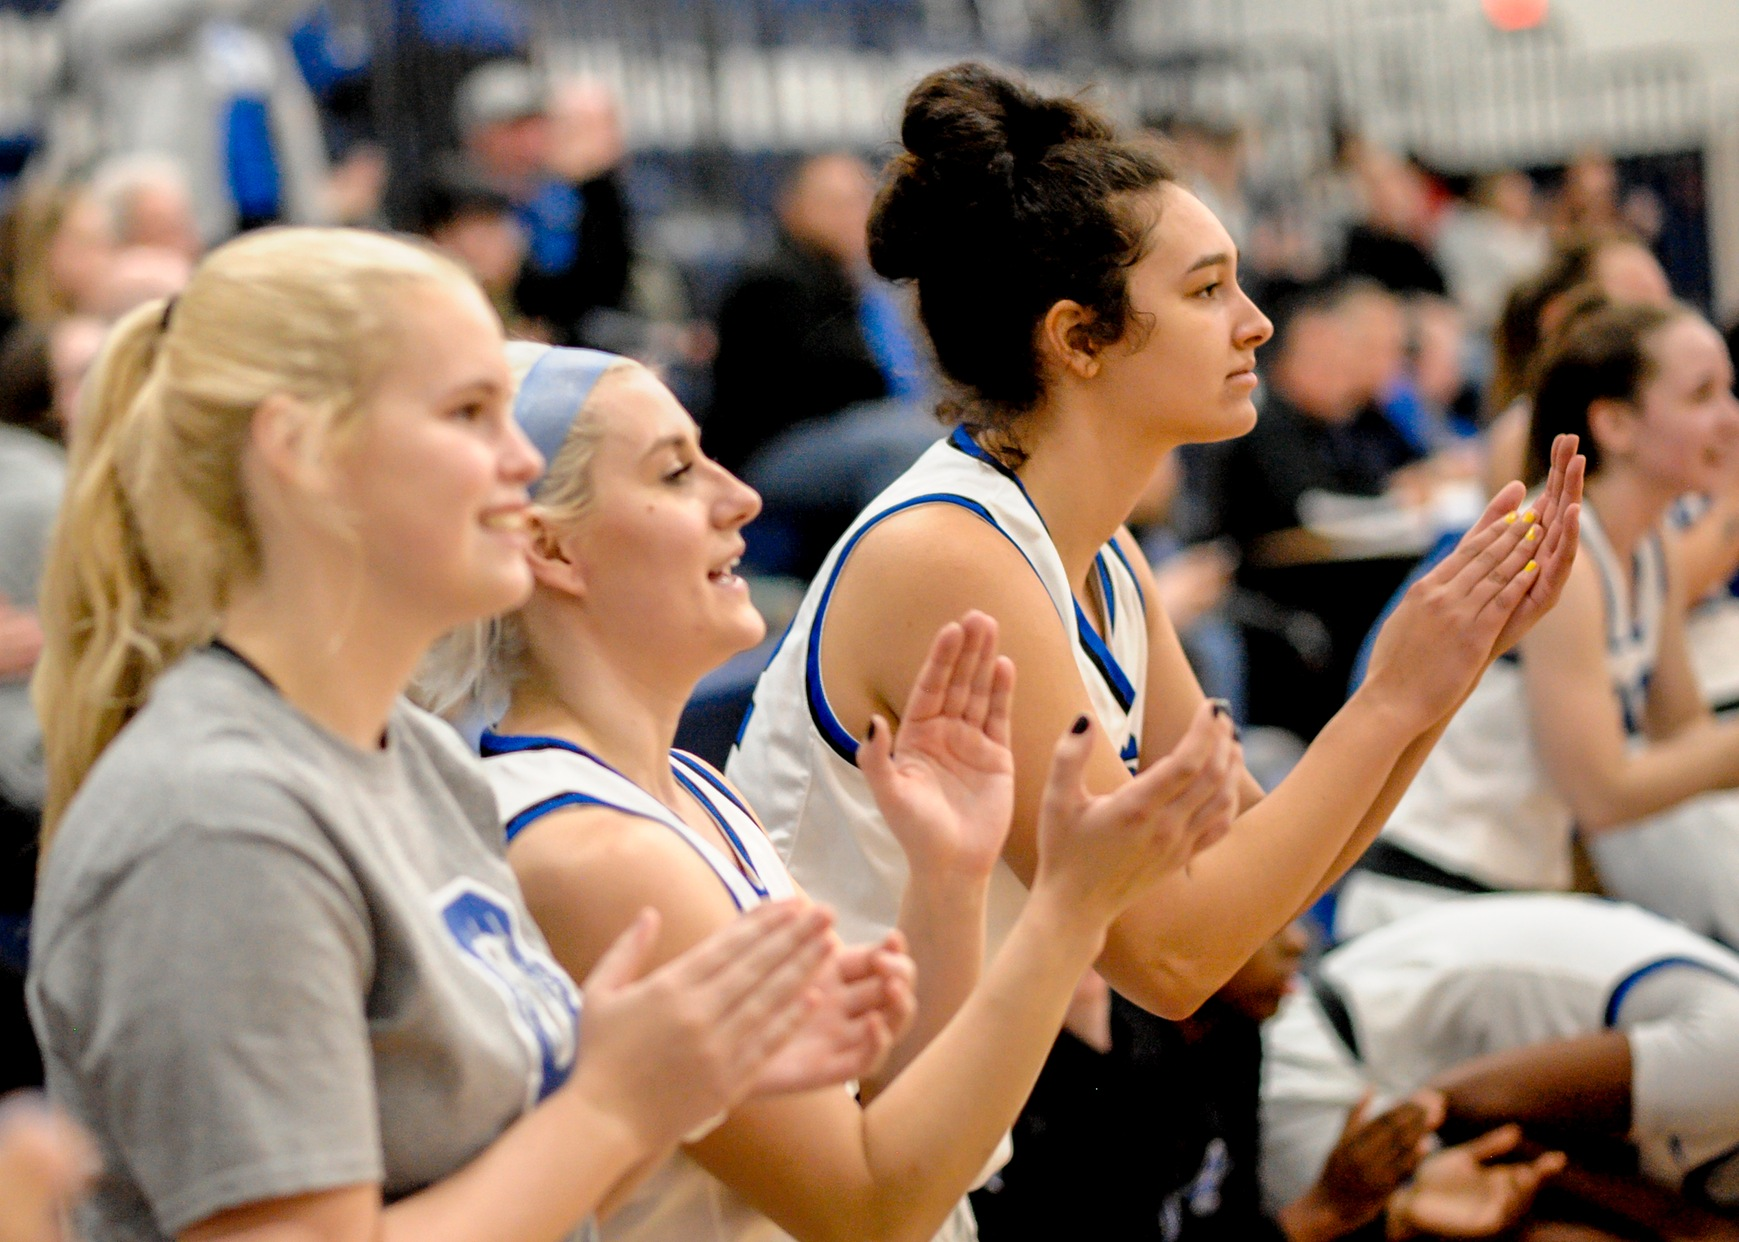 DMACC women's basketball team suffers 86-41 loss